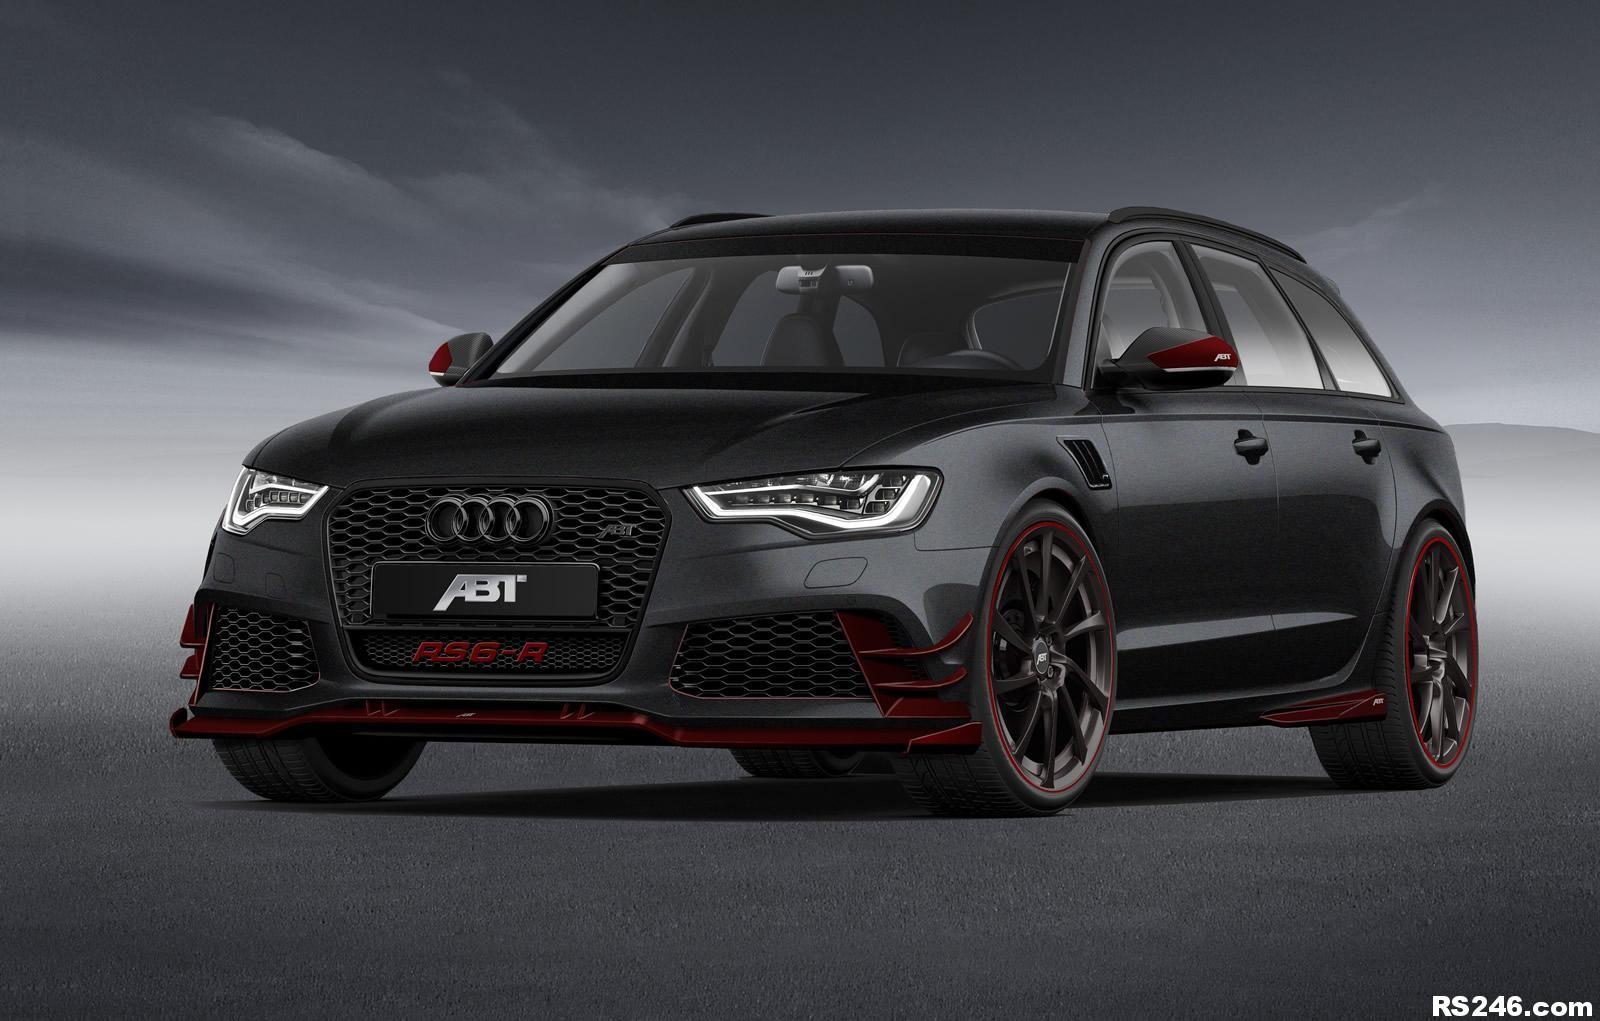 Limited Edition Abt Rs6 R Rs246 Com